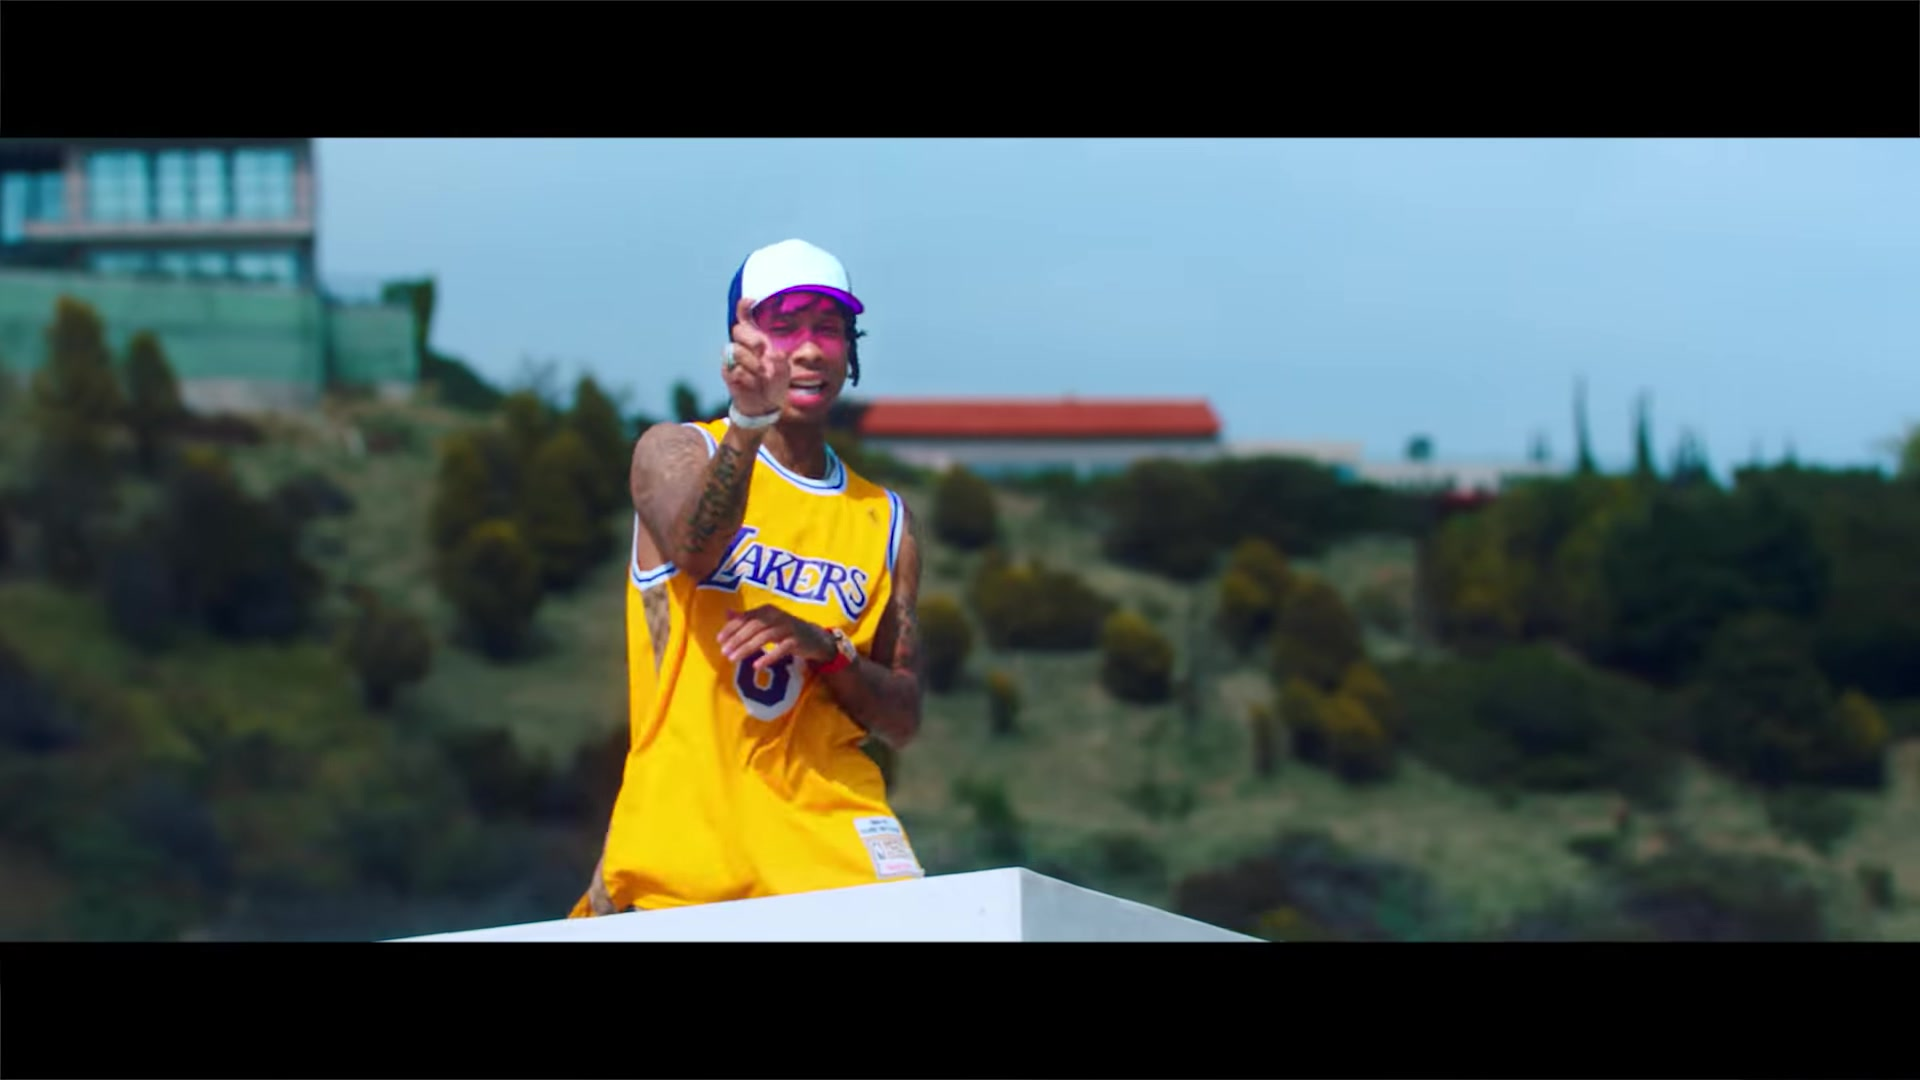 Los Angeles Lakers Wallpaper Hd Seen In The Music Video Lakers Jersey In Taste By Tyga